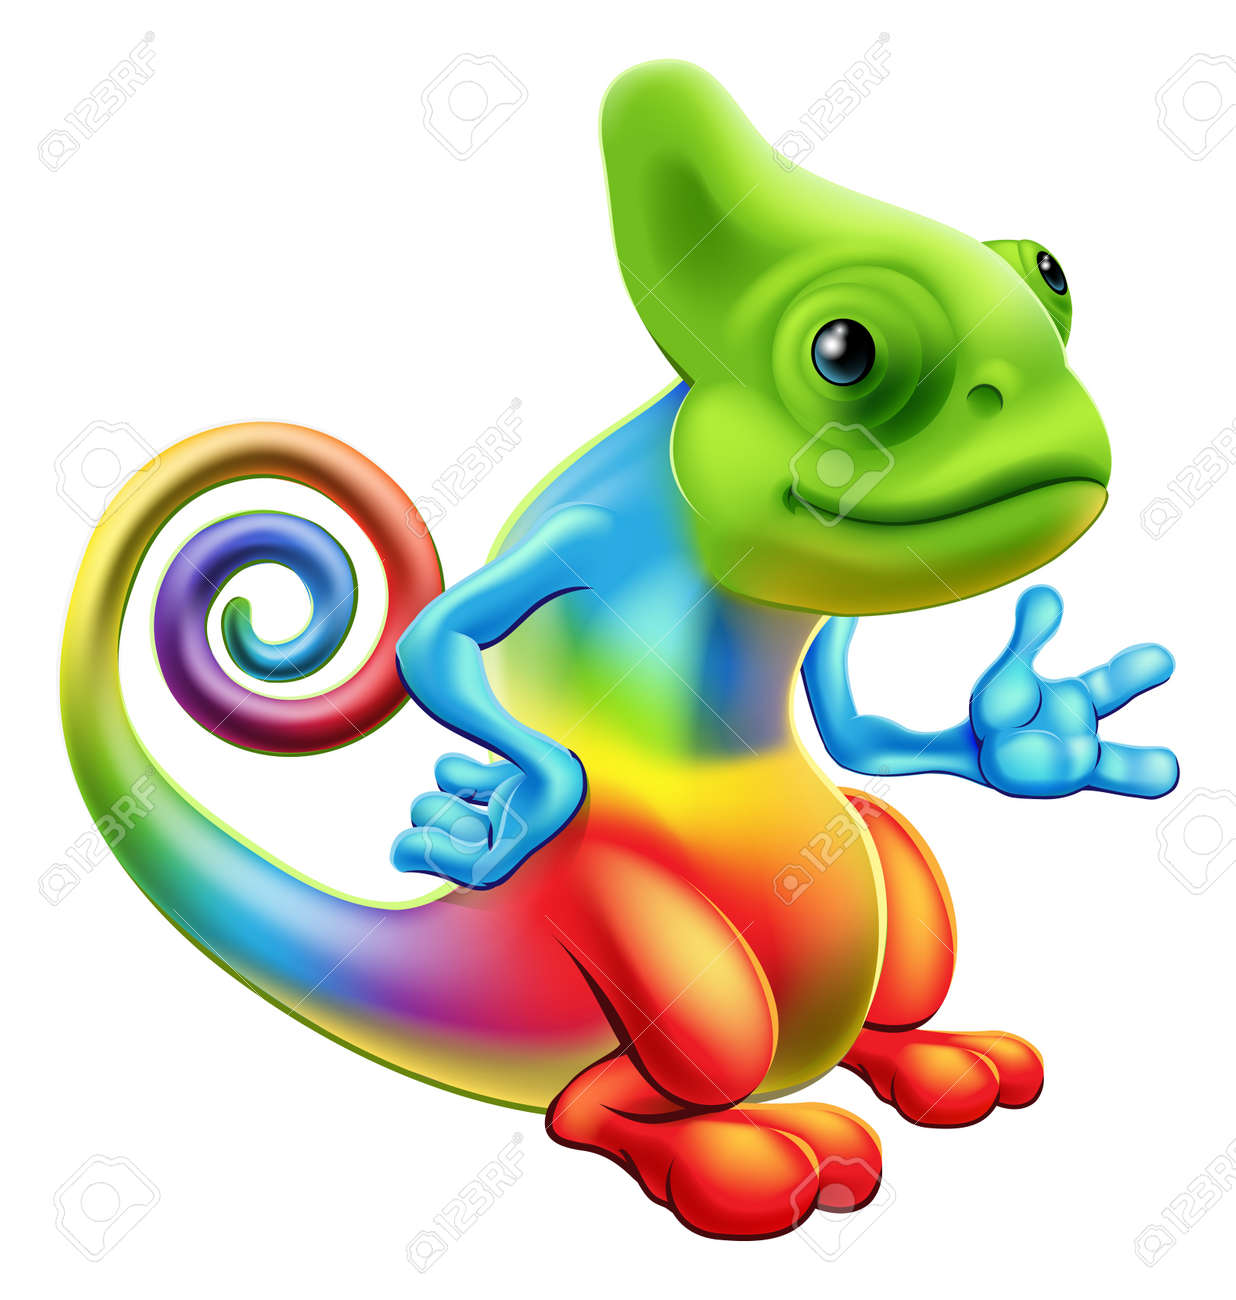 4 885 chameleon cliparts stock vector and royalty free chameleon rh 123rf com cartoon chameleon clipart chameleon clip art free